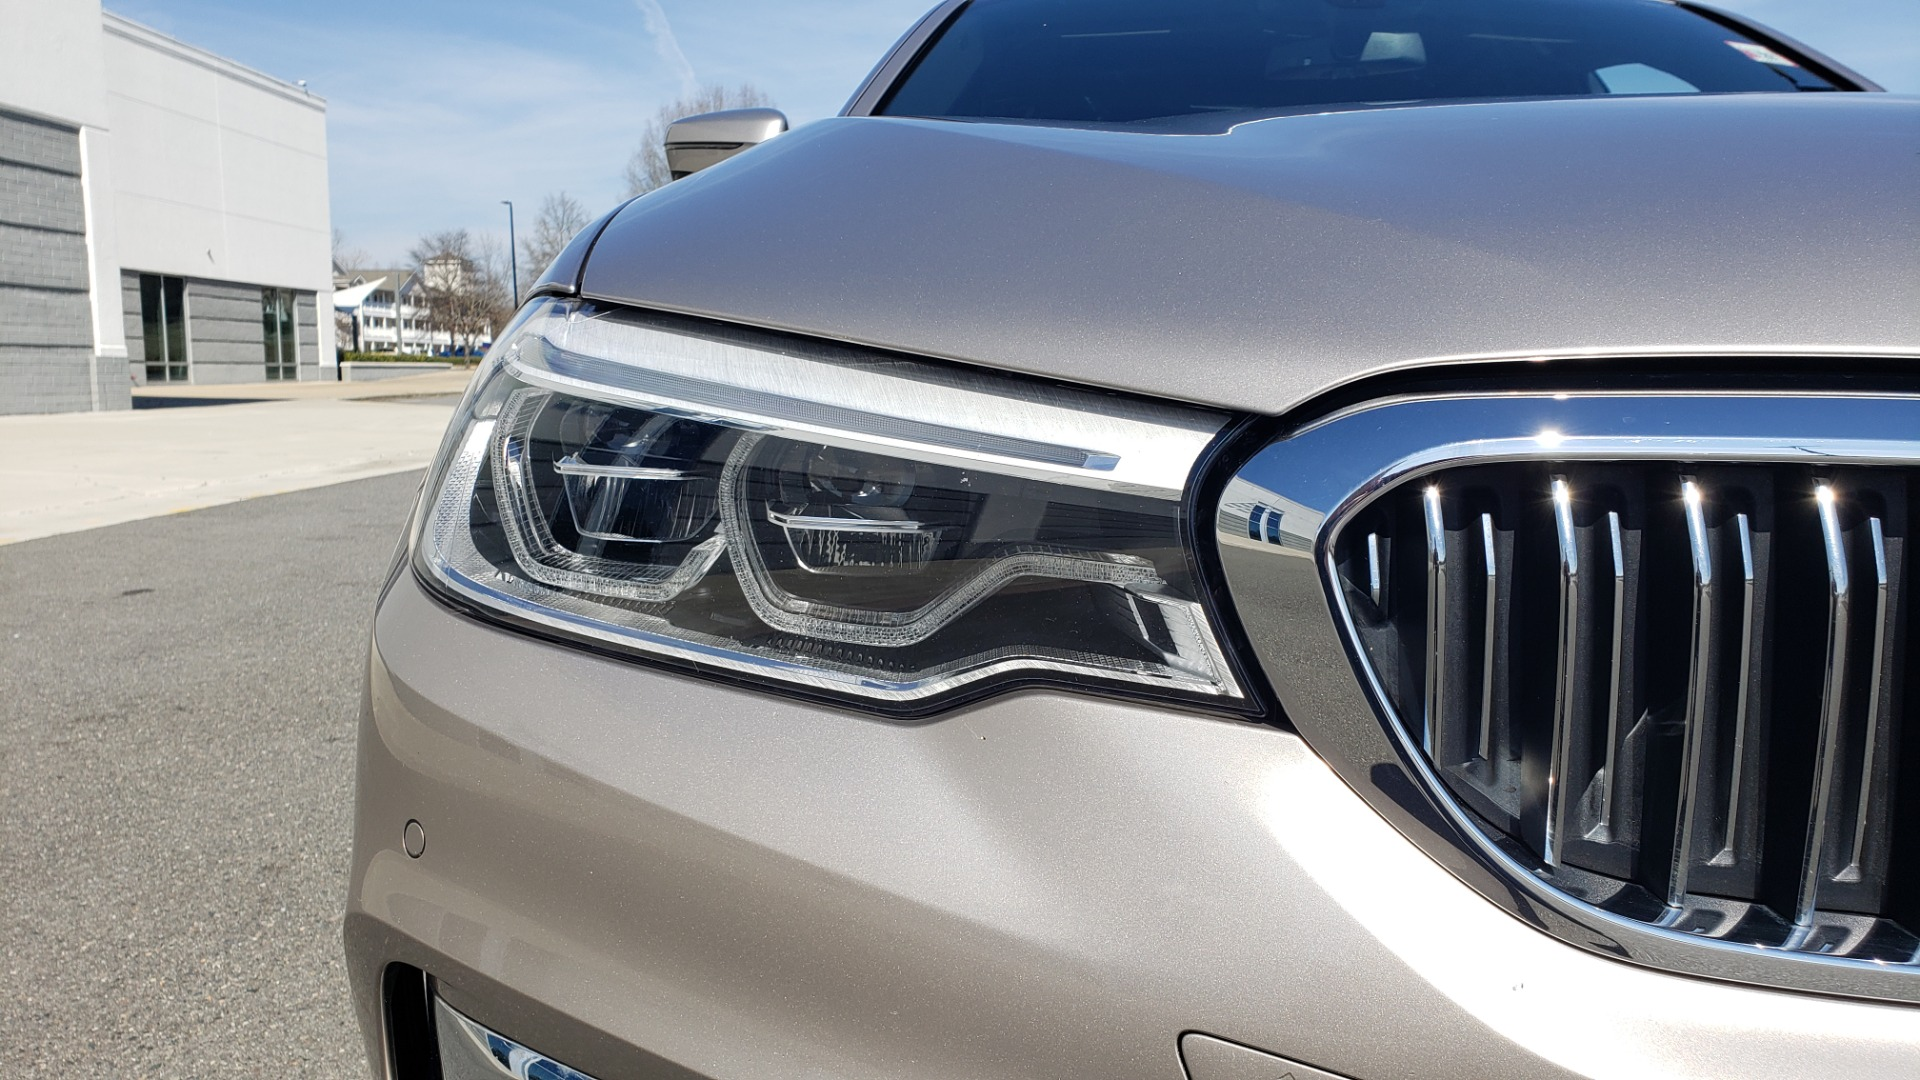 Used 2018 BMW 5 SERIES 540IXDRIVE PREMIUM / DRVR ASST PLUS / LUX PKG / APPLE CARPLAY for sale Sold at Formula Imports in Charlotte NC 28227 20